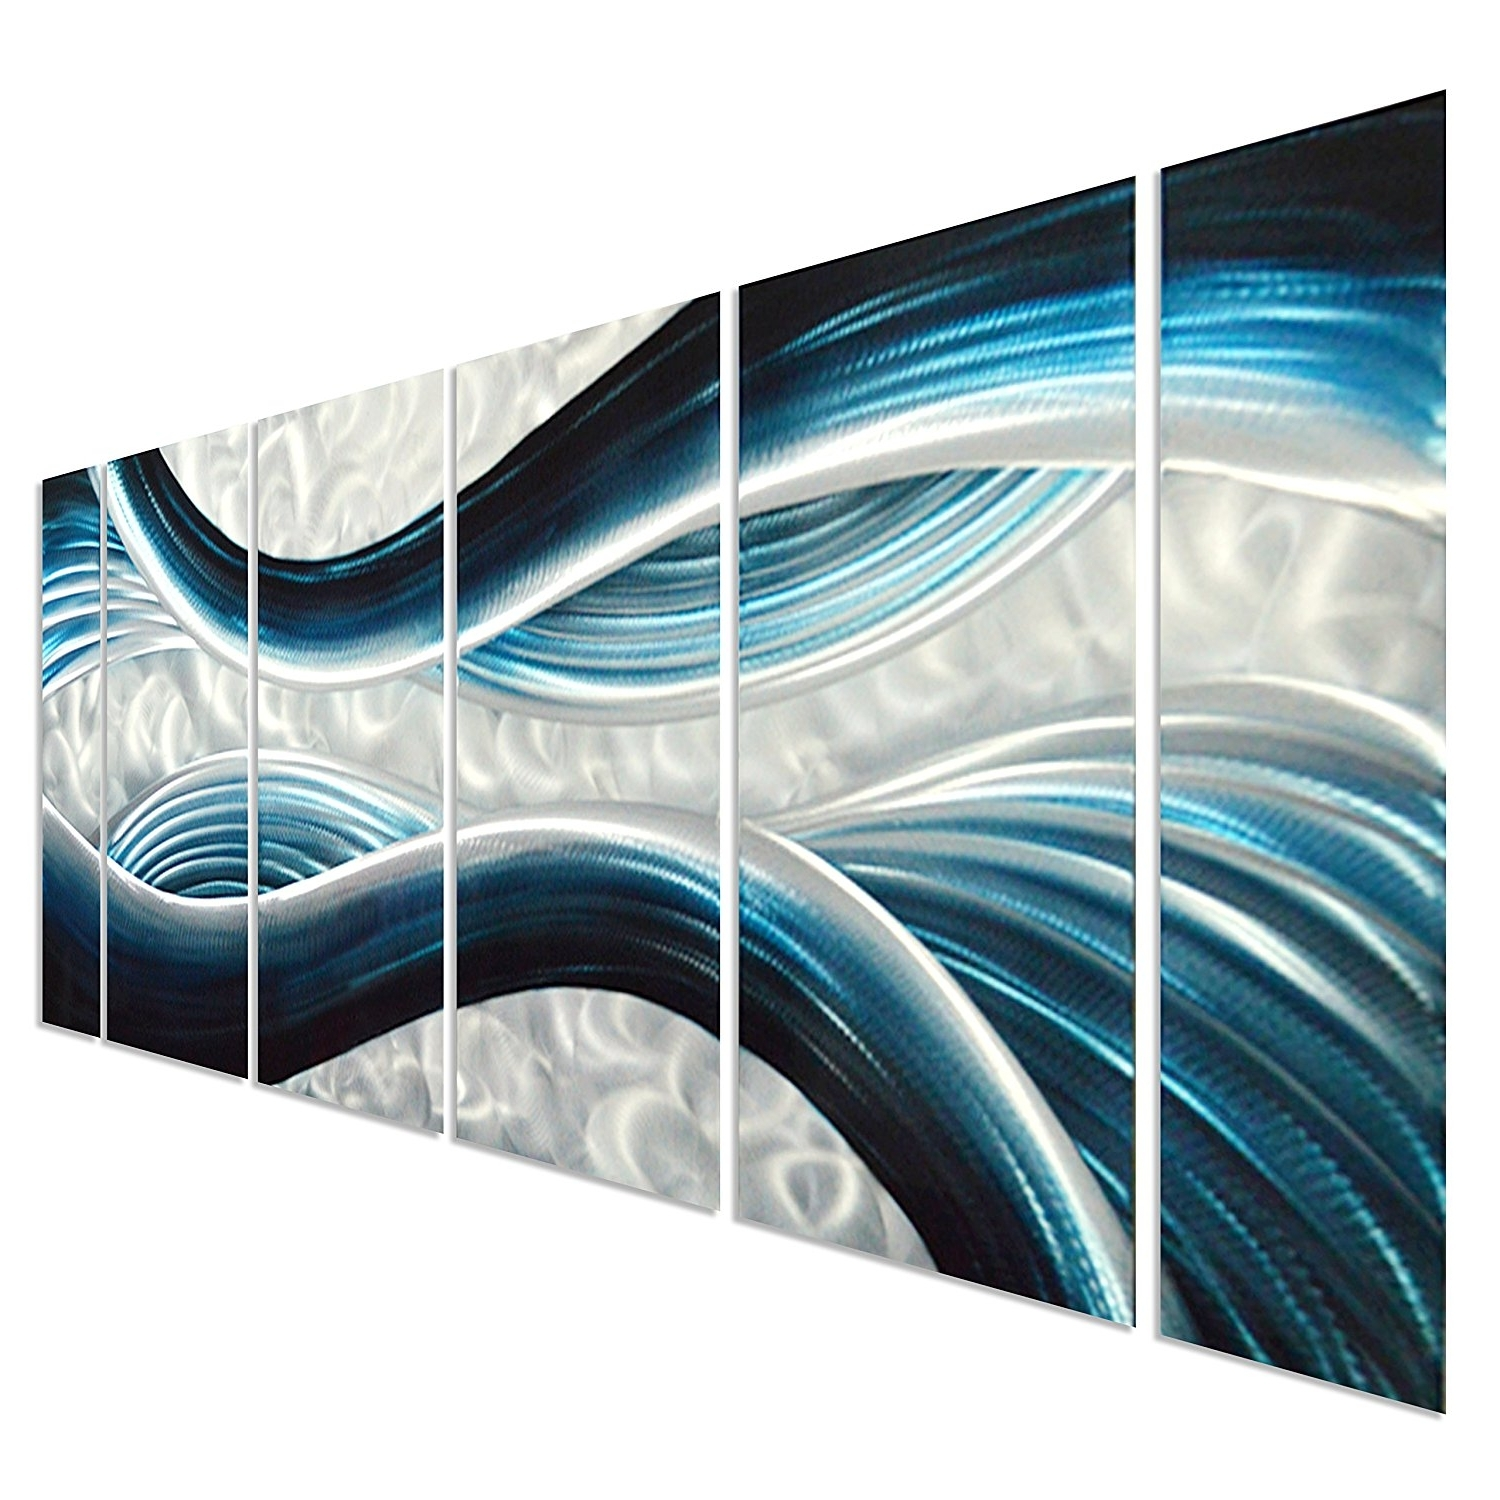 Abstract Metal Wall Art Australia Throughout Most Recent Metal Wall Art Panels Australia A Decal Amazon Blue Desire Large (View 5 of 15)